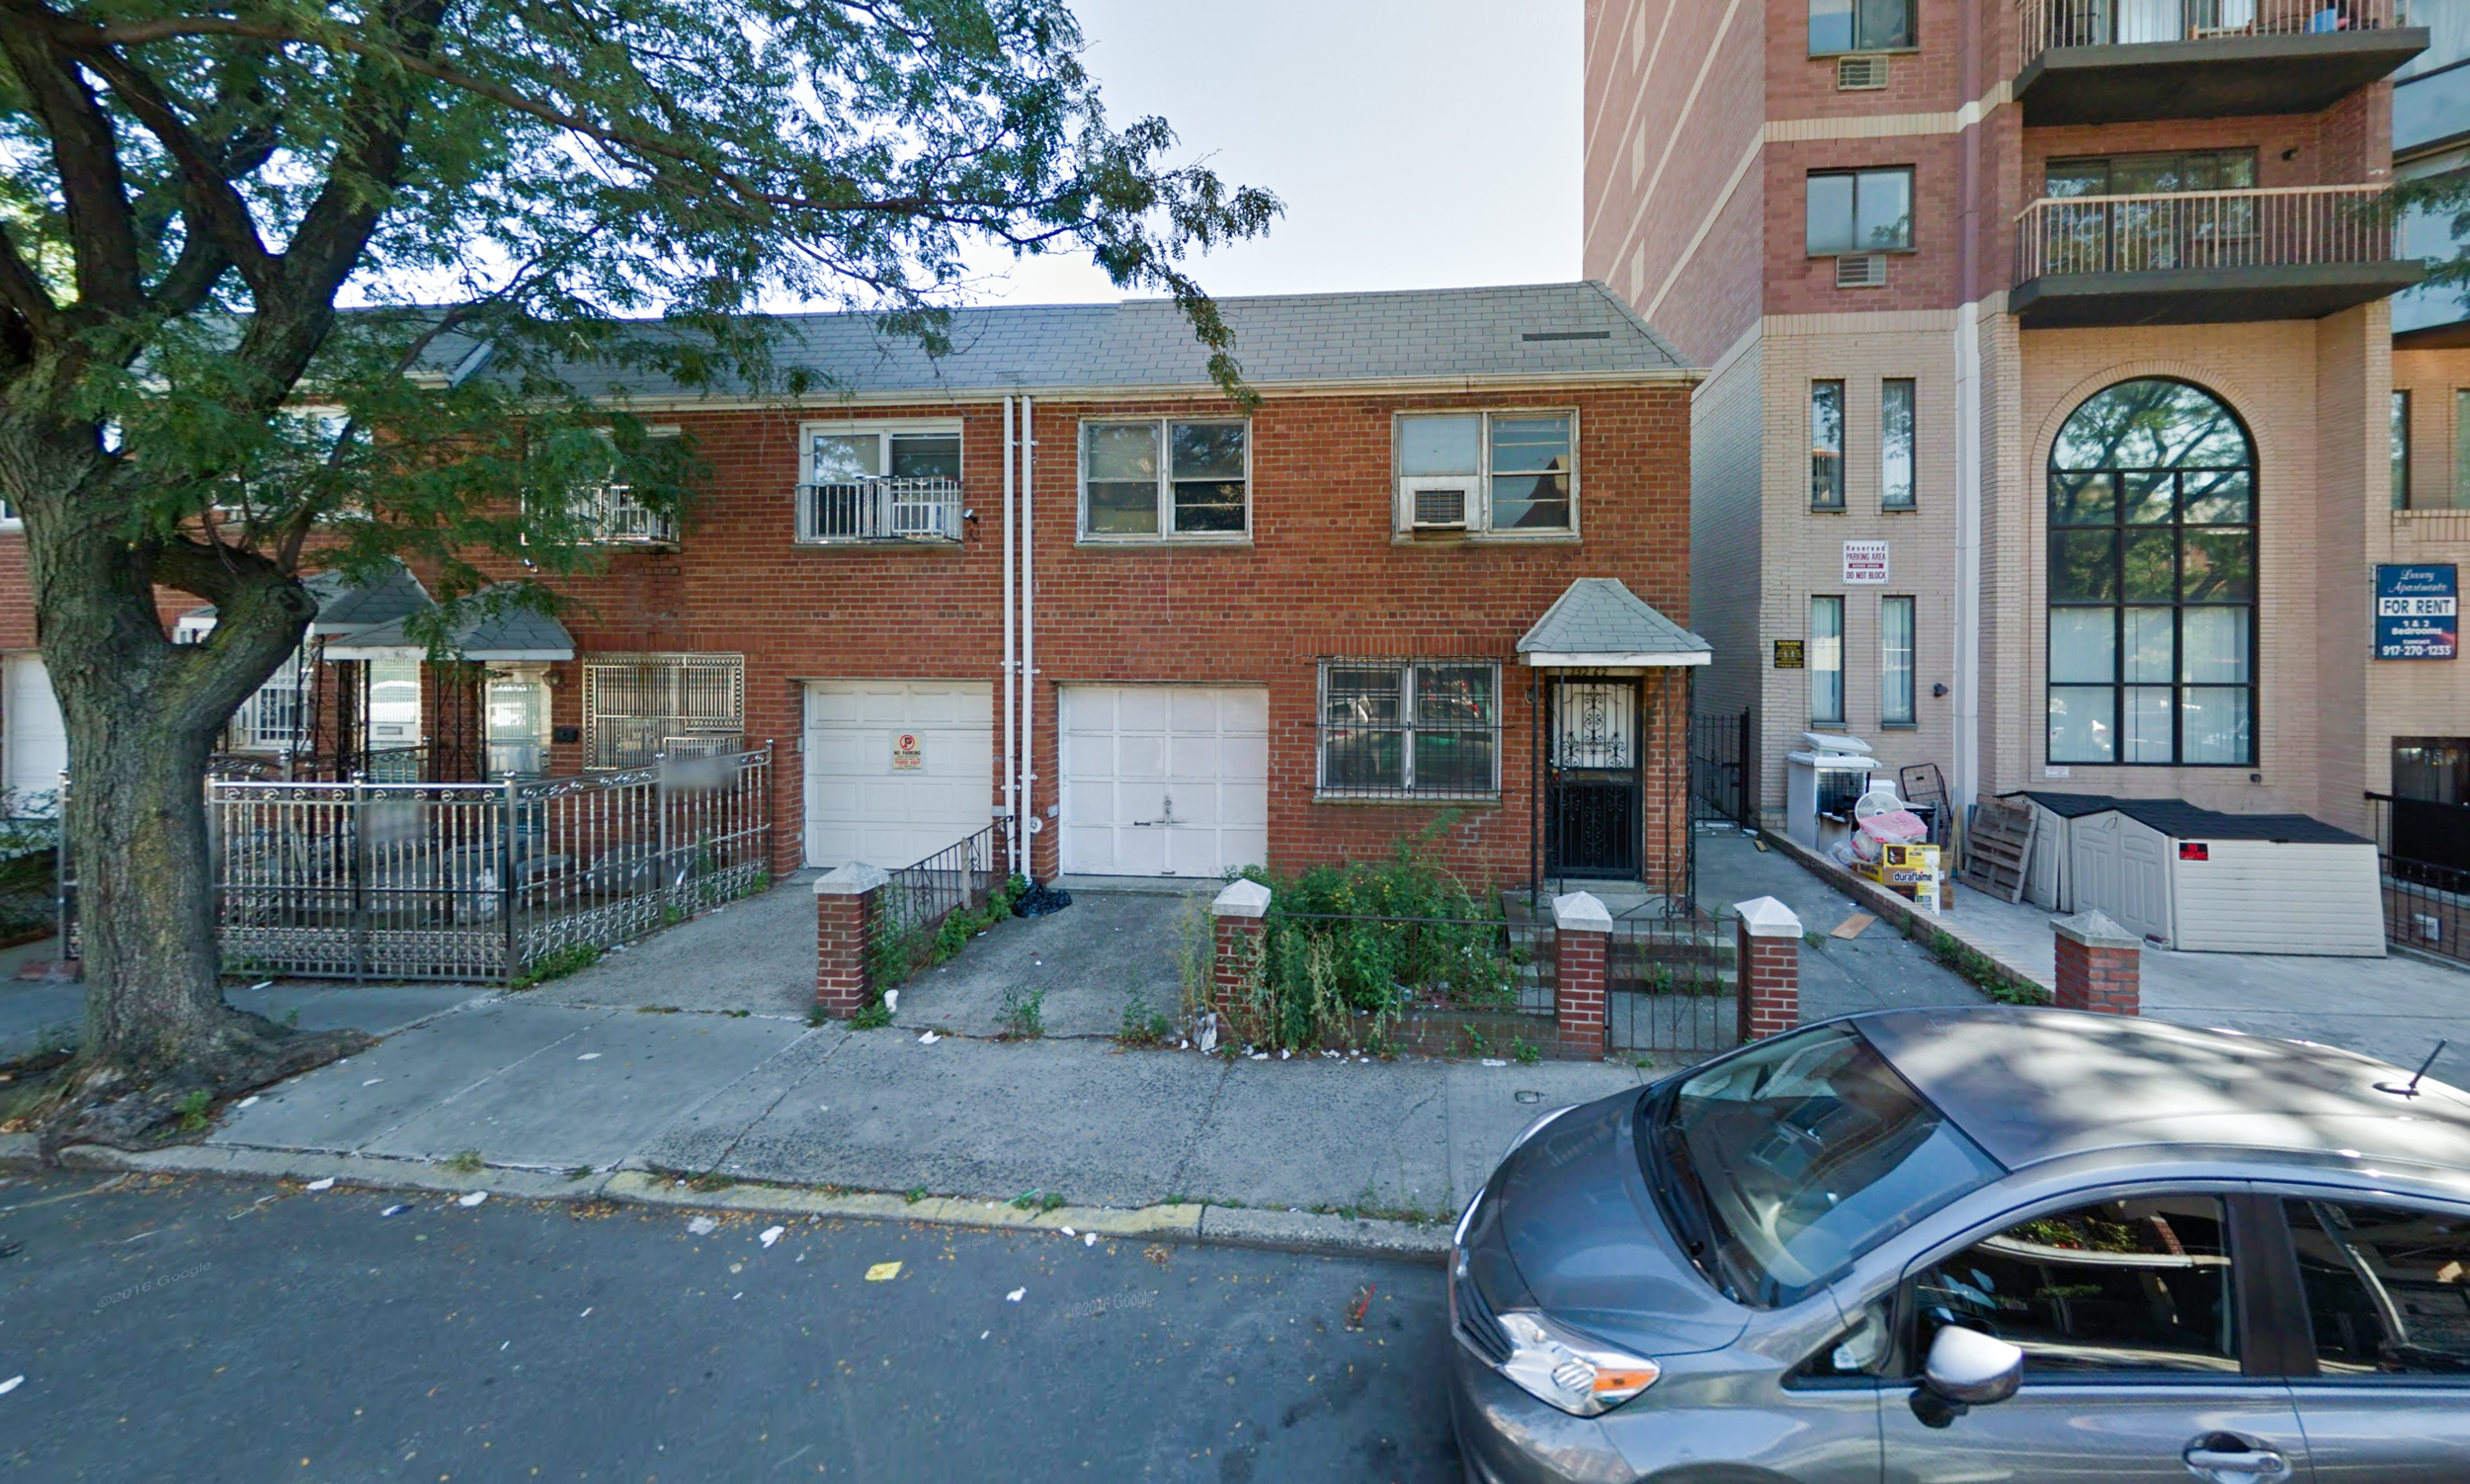 132-62 Pople Avenue, via Google Maps